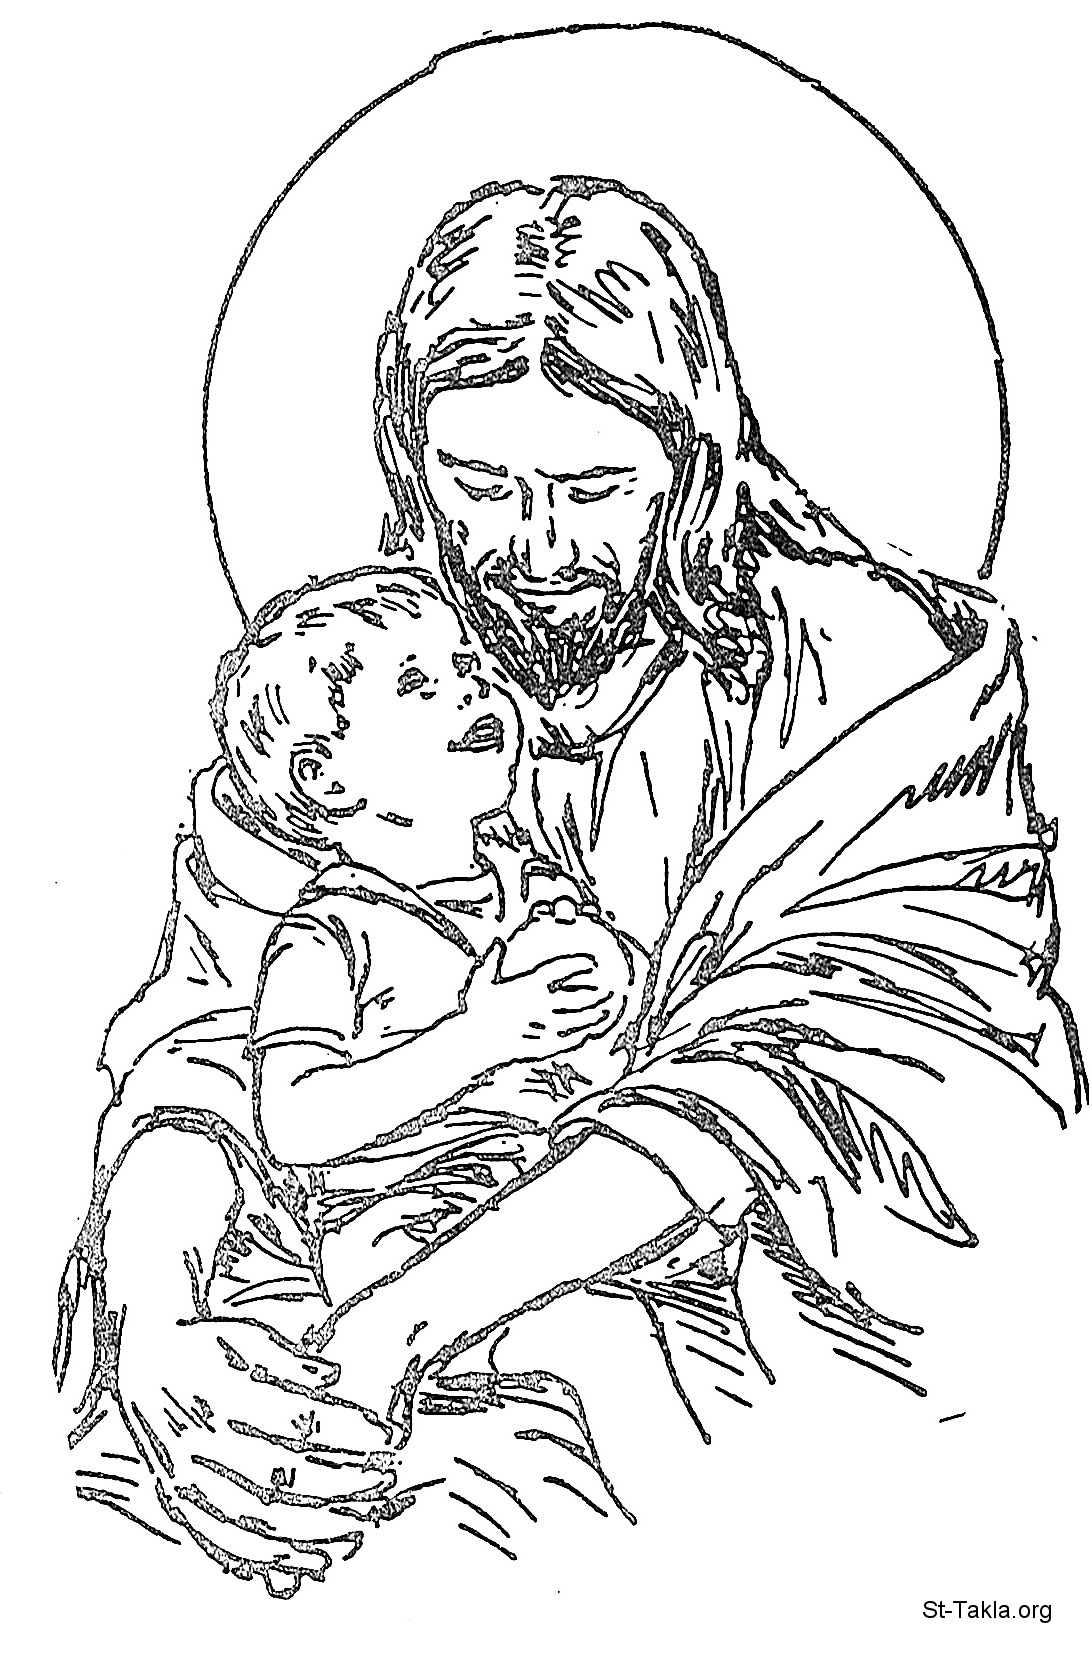 coloring pages for kids jesus jesus christ coloring pages getcoloringpagescom coloring kids jesus for pages